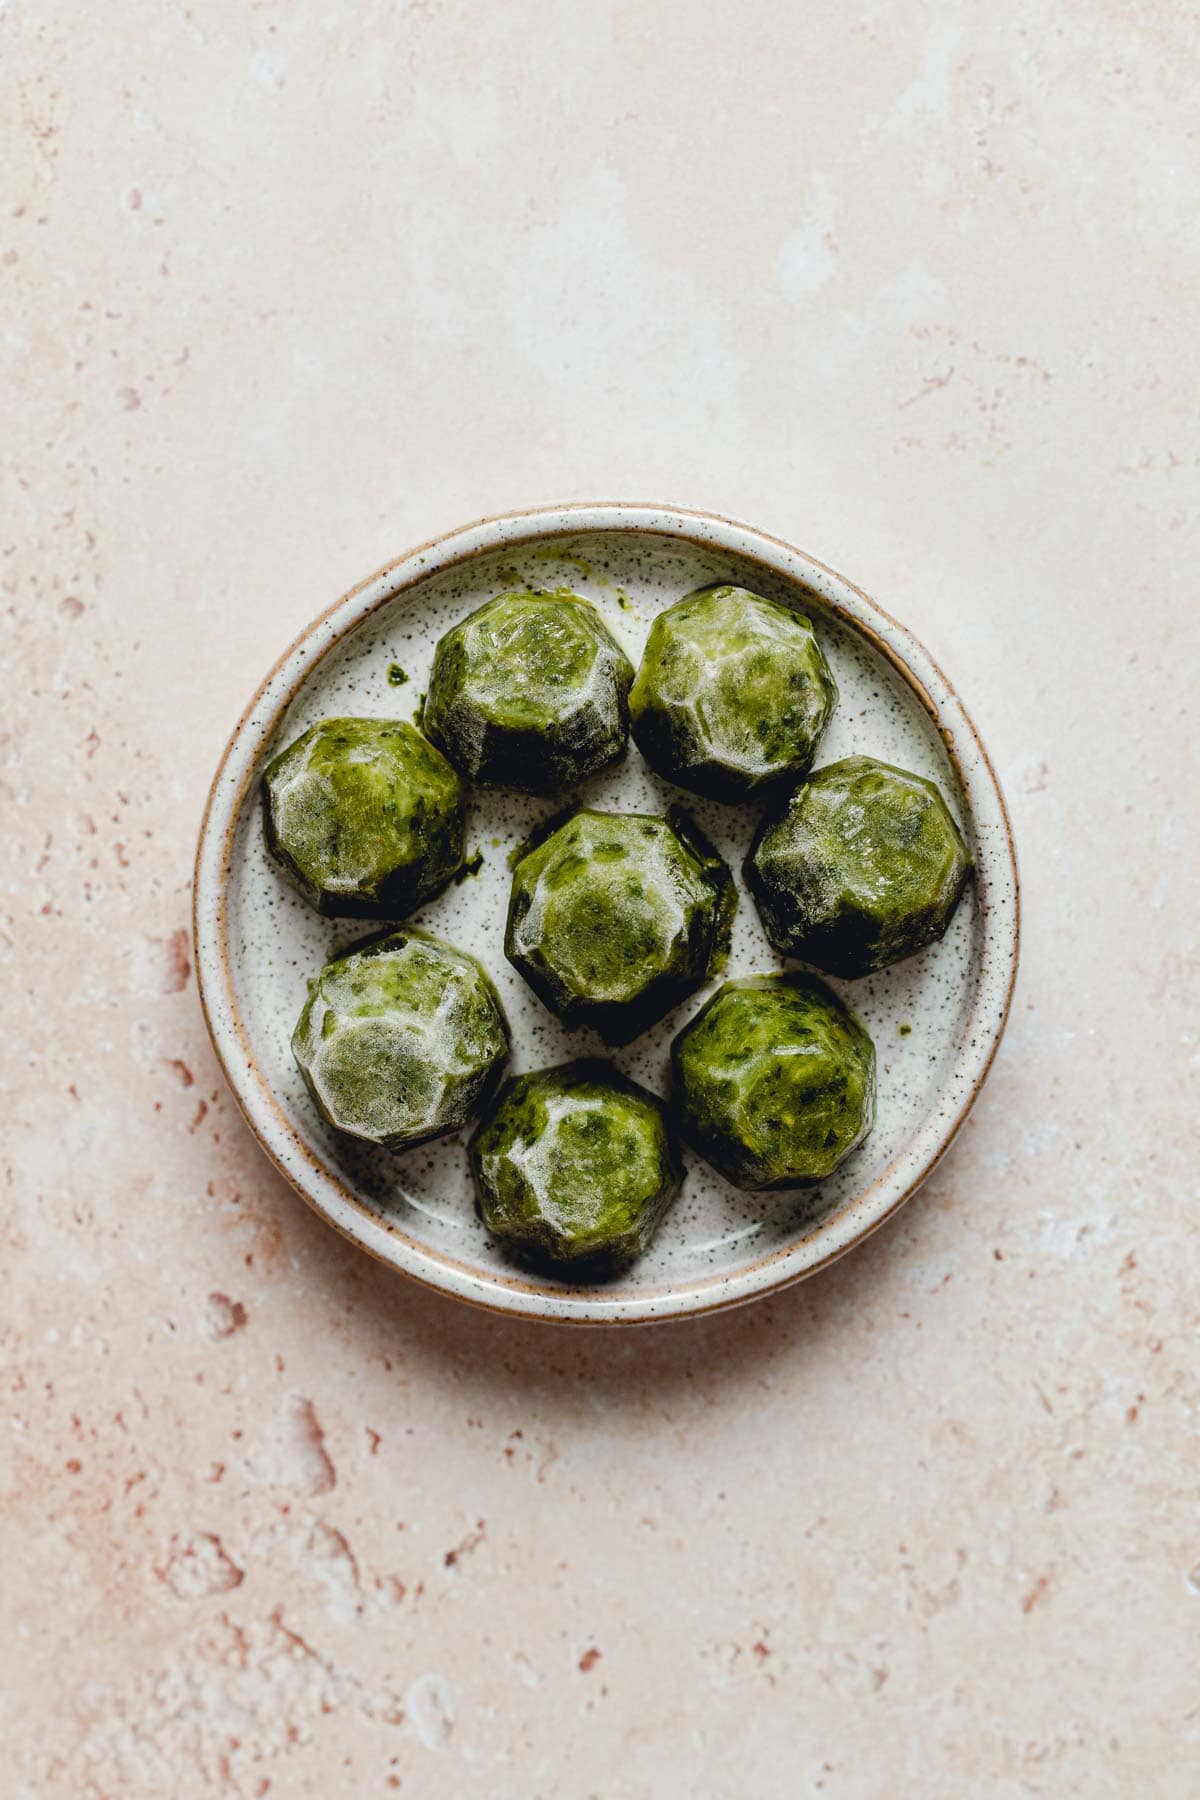 Frozen green chutney cubes placed on a small round plate.